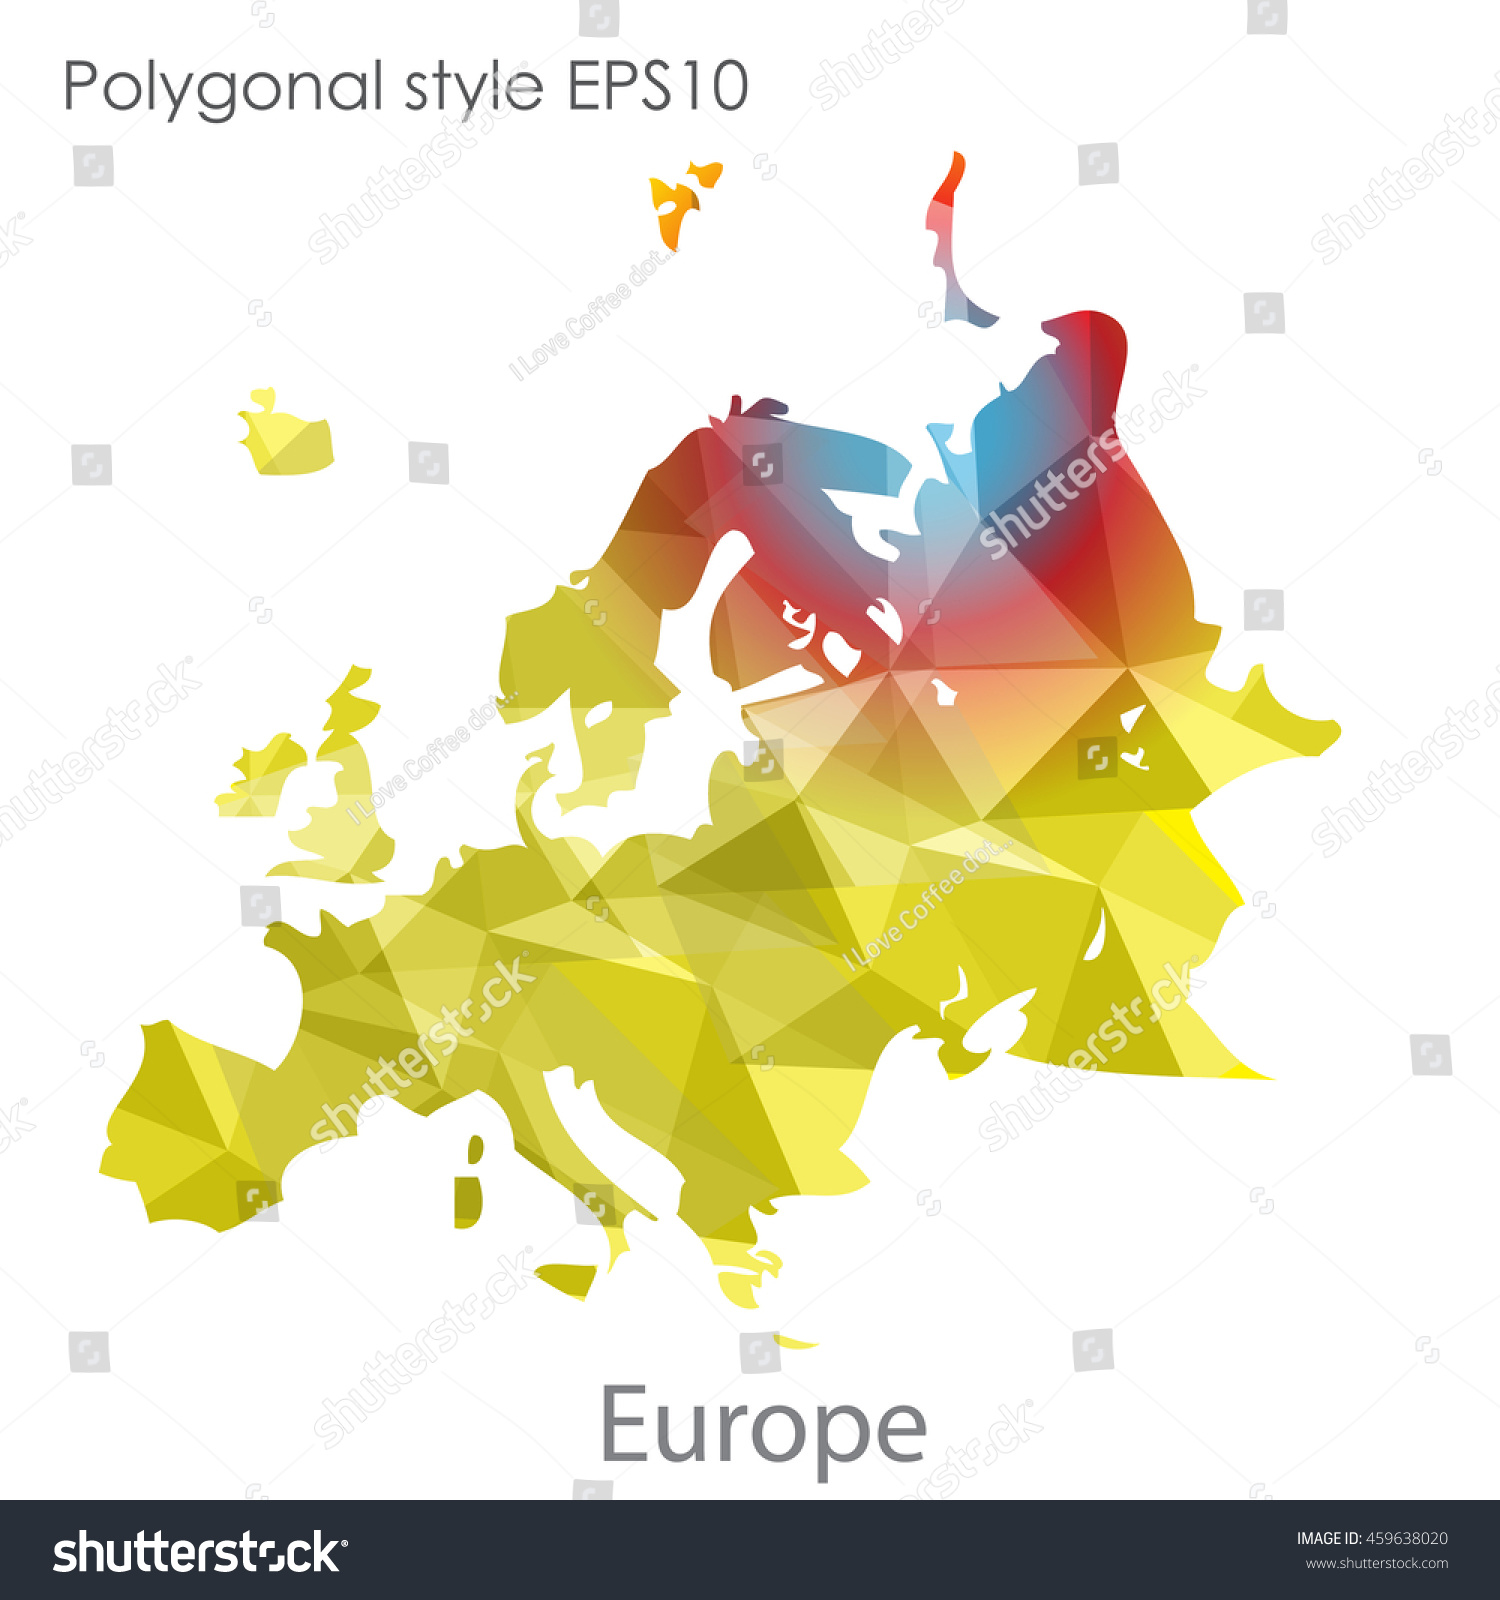 Europe Map Geometric Polygonal Style Abstract Gems Stock Vector ...